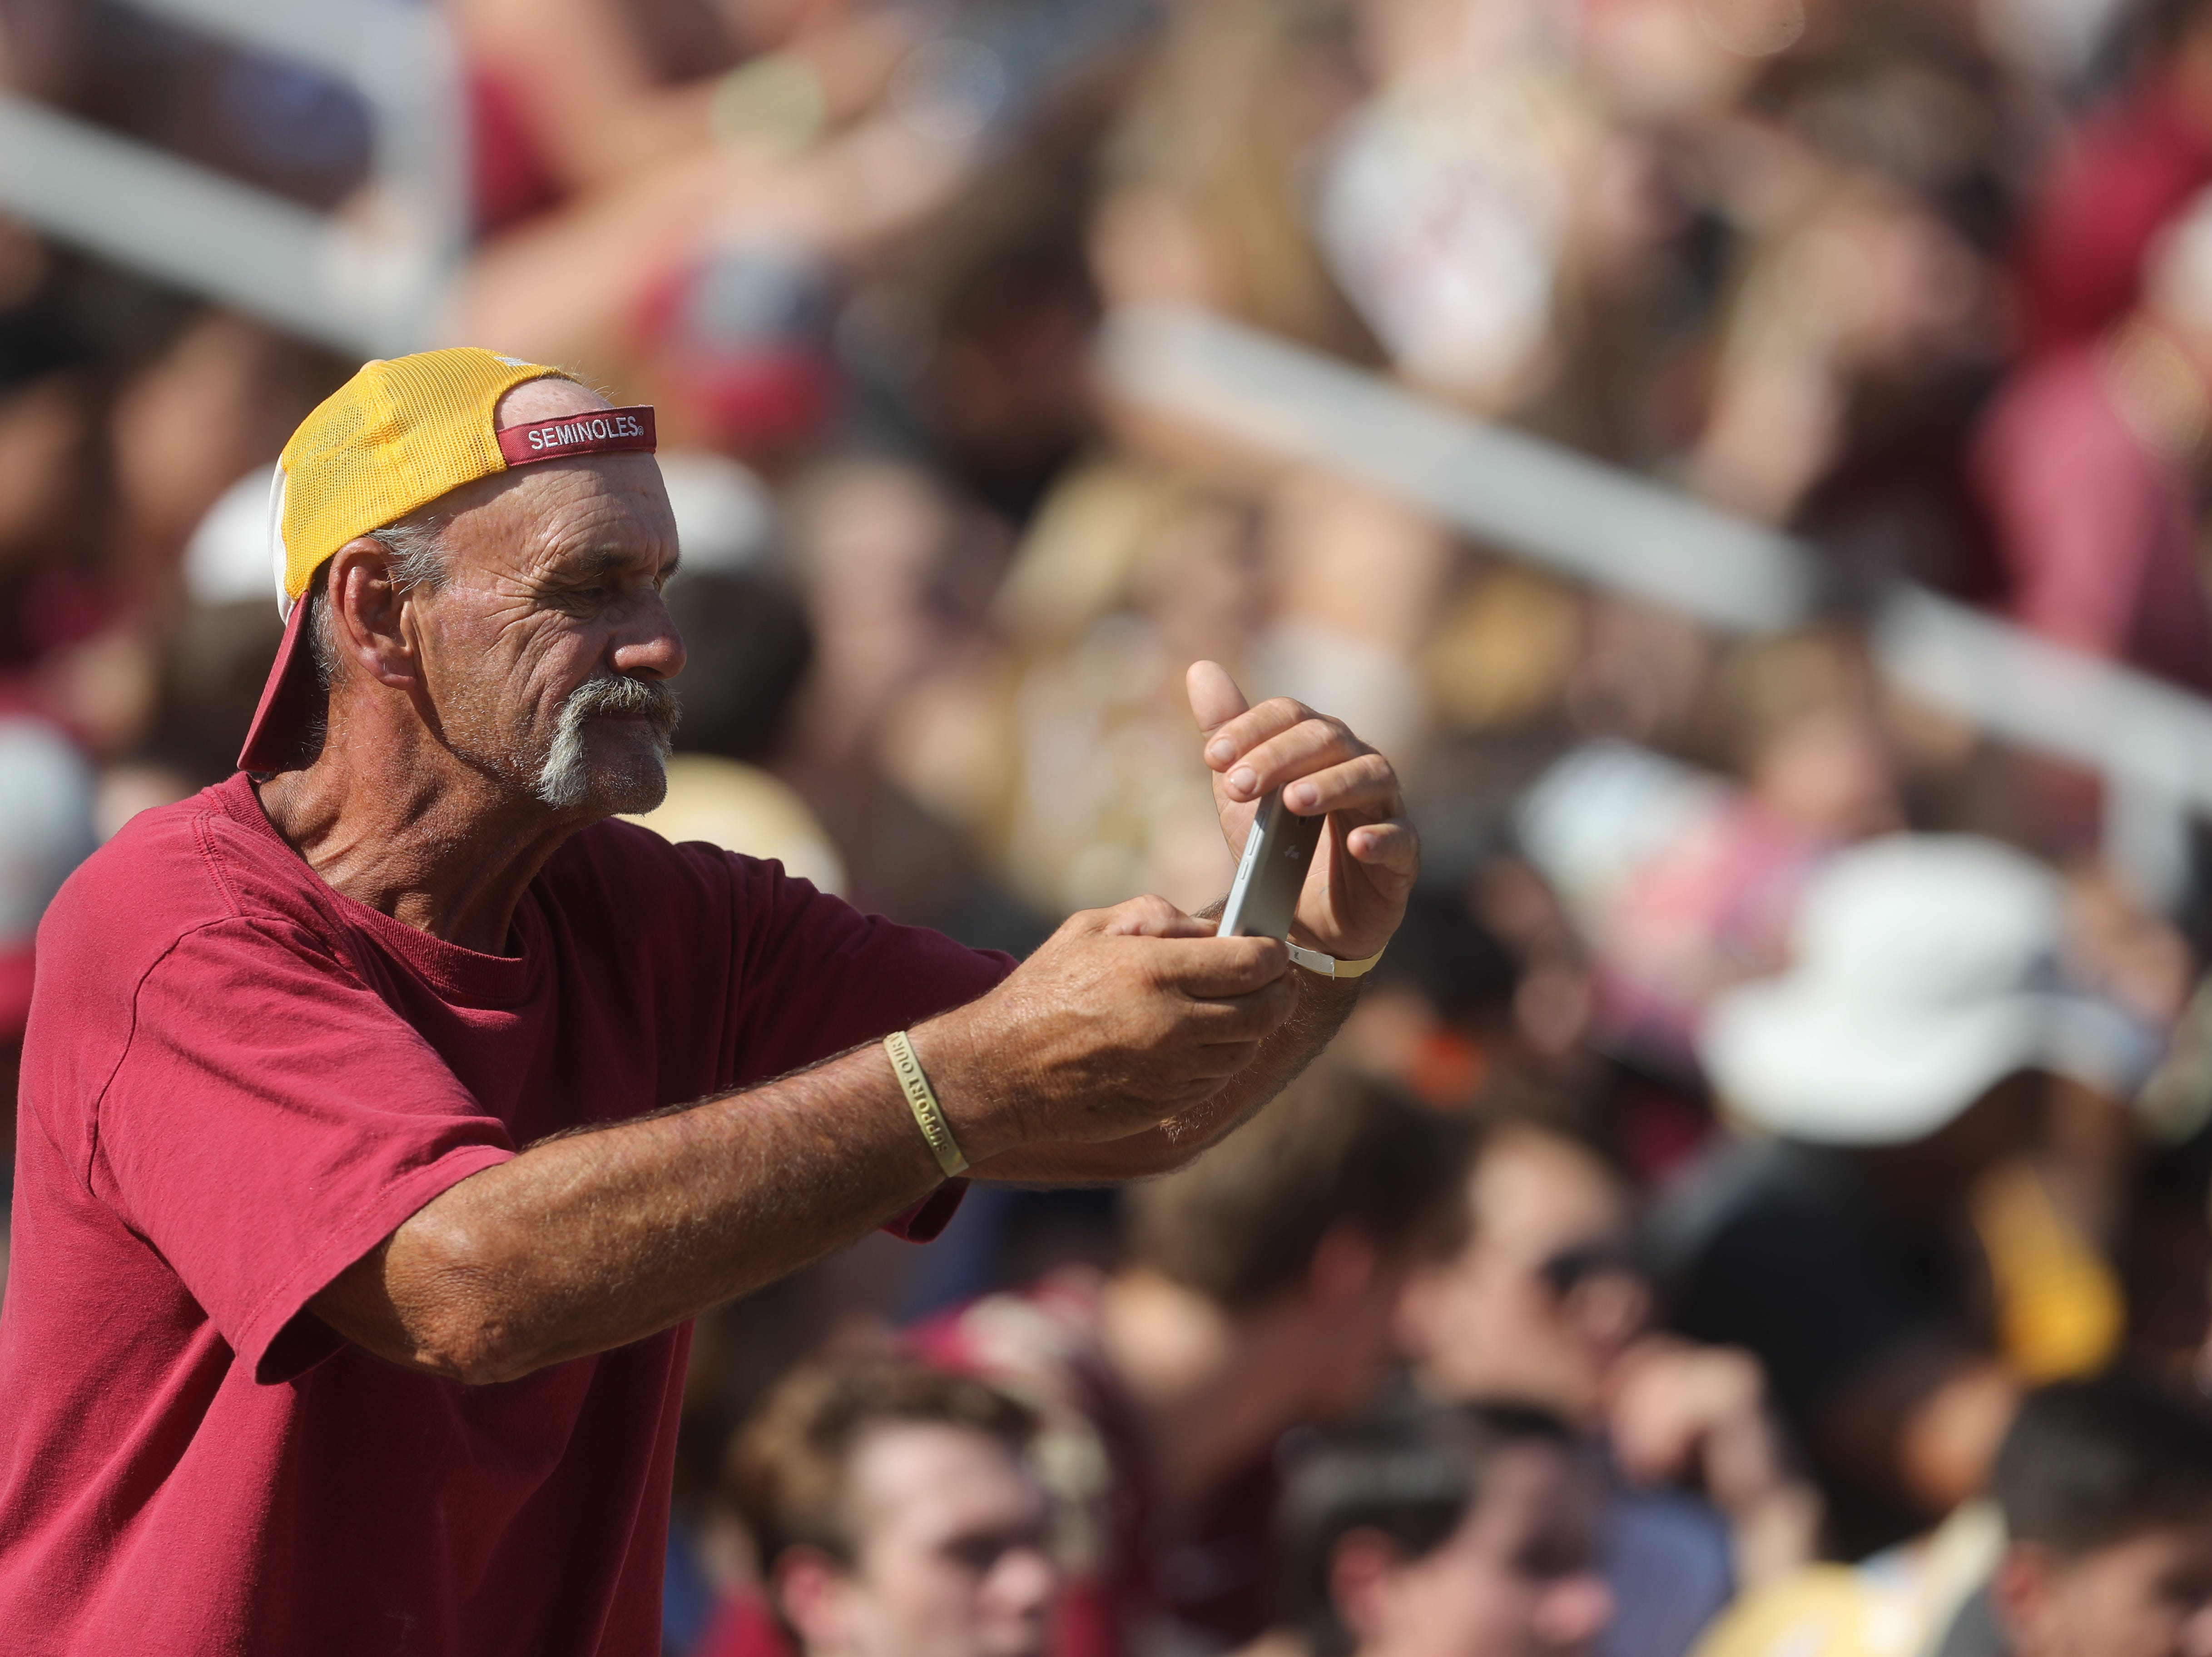 A fan takes a photo during a game between the Florida State University Seminoles and the Northern Illinois University Huskies at Doak S. Campbell Stadium in Tallahassee, Fla. Saturday, September 22, 2018.